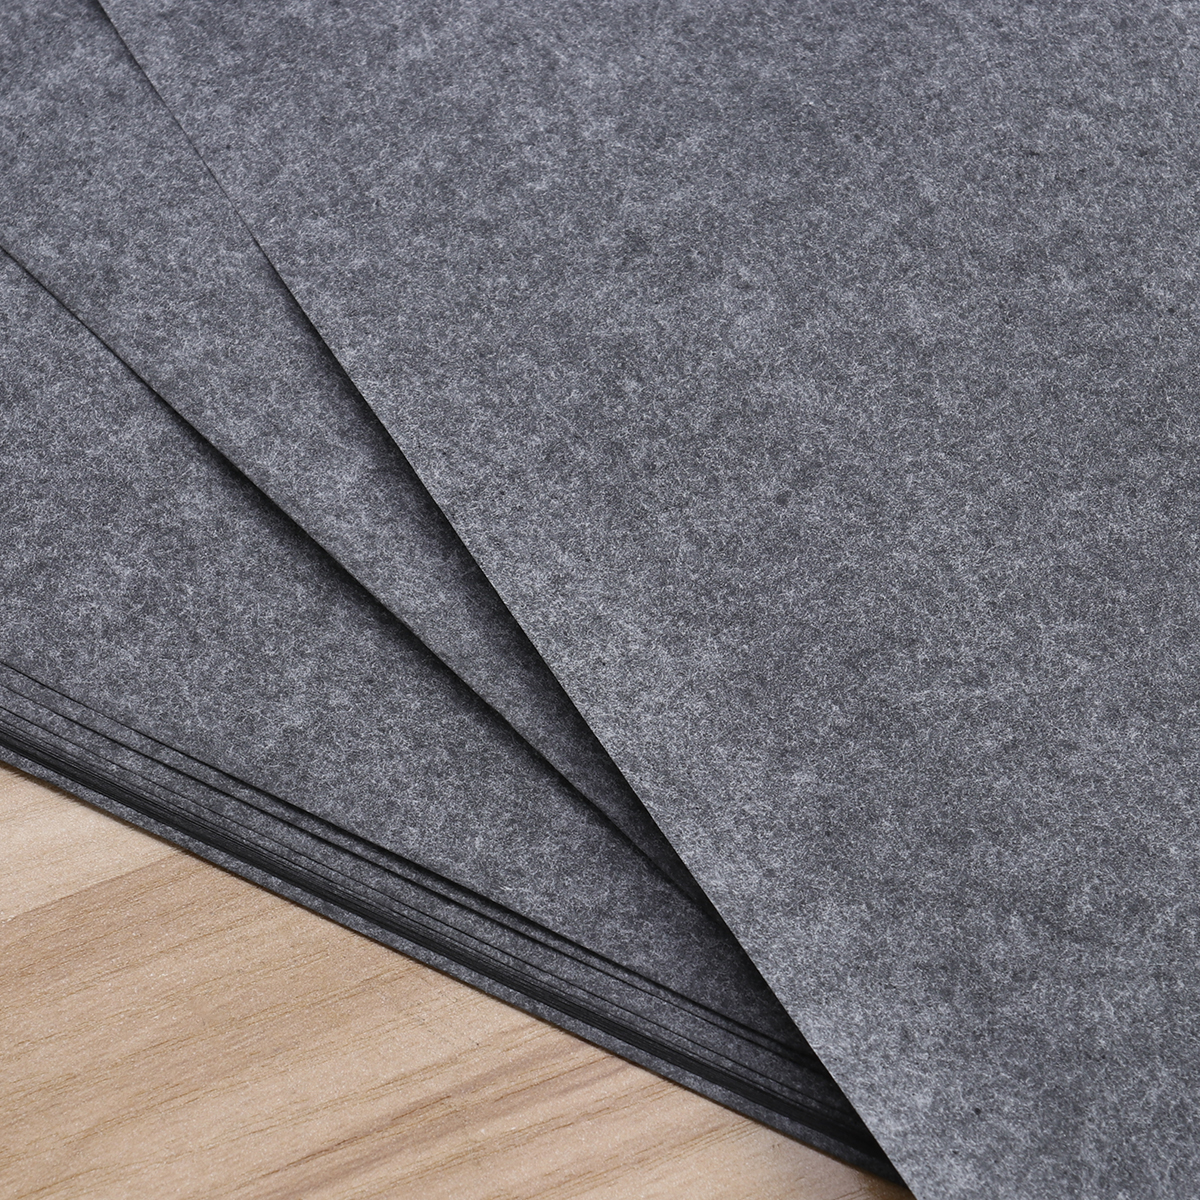 25sheets bag transfer paper tracing paper graphite carbon paper